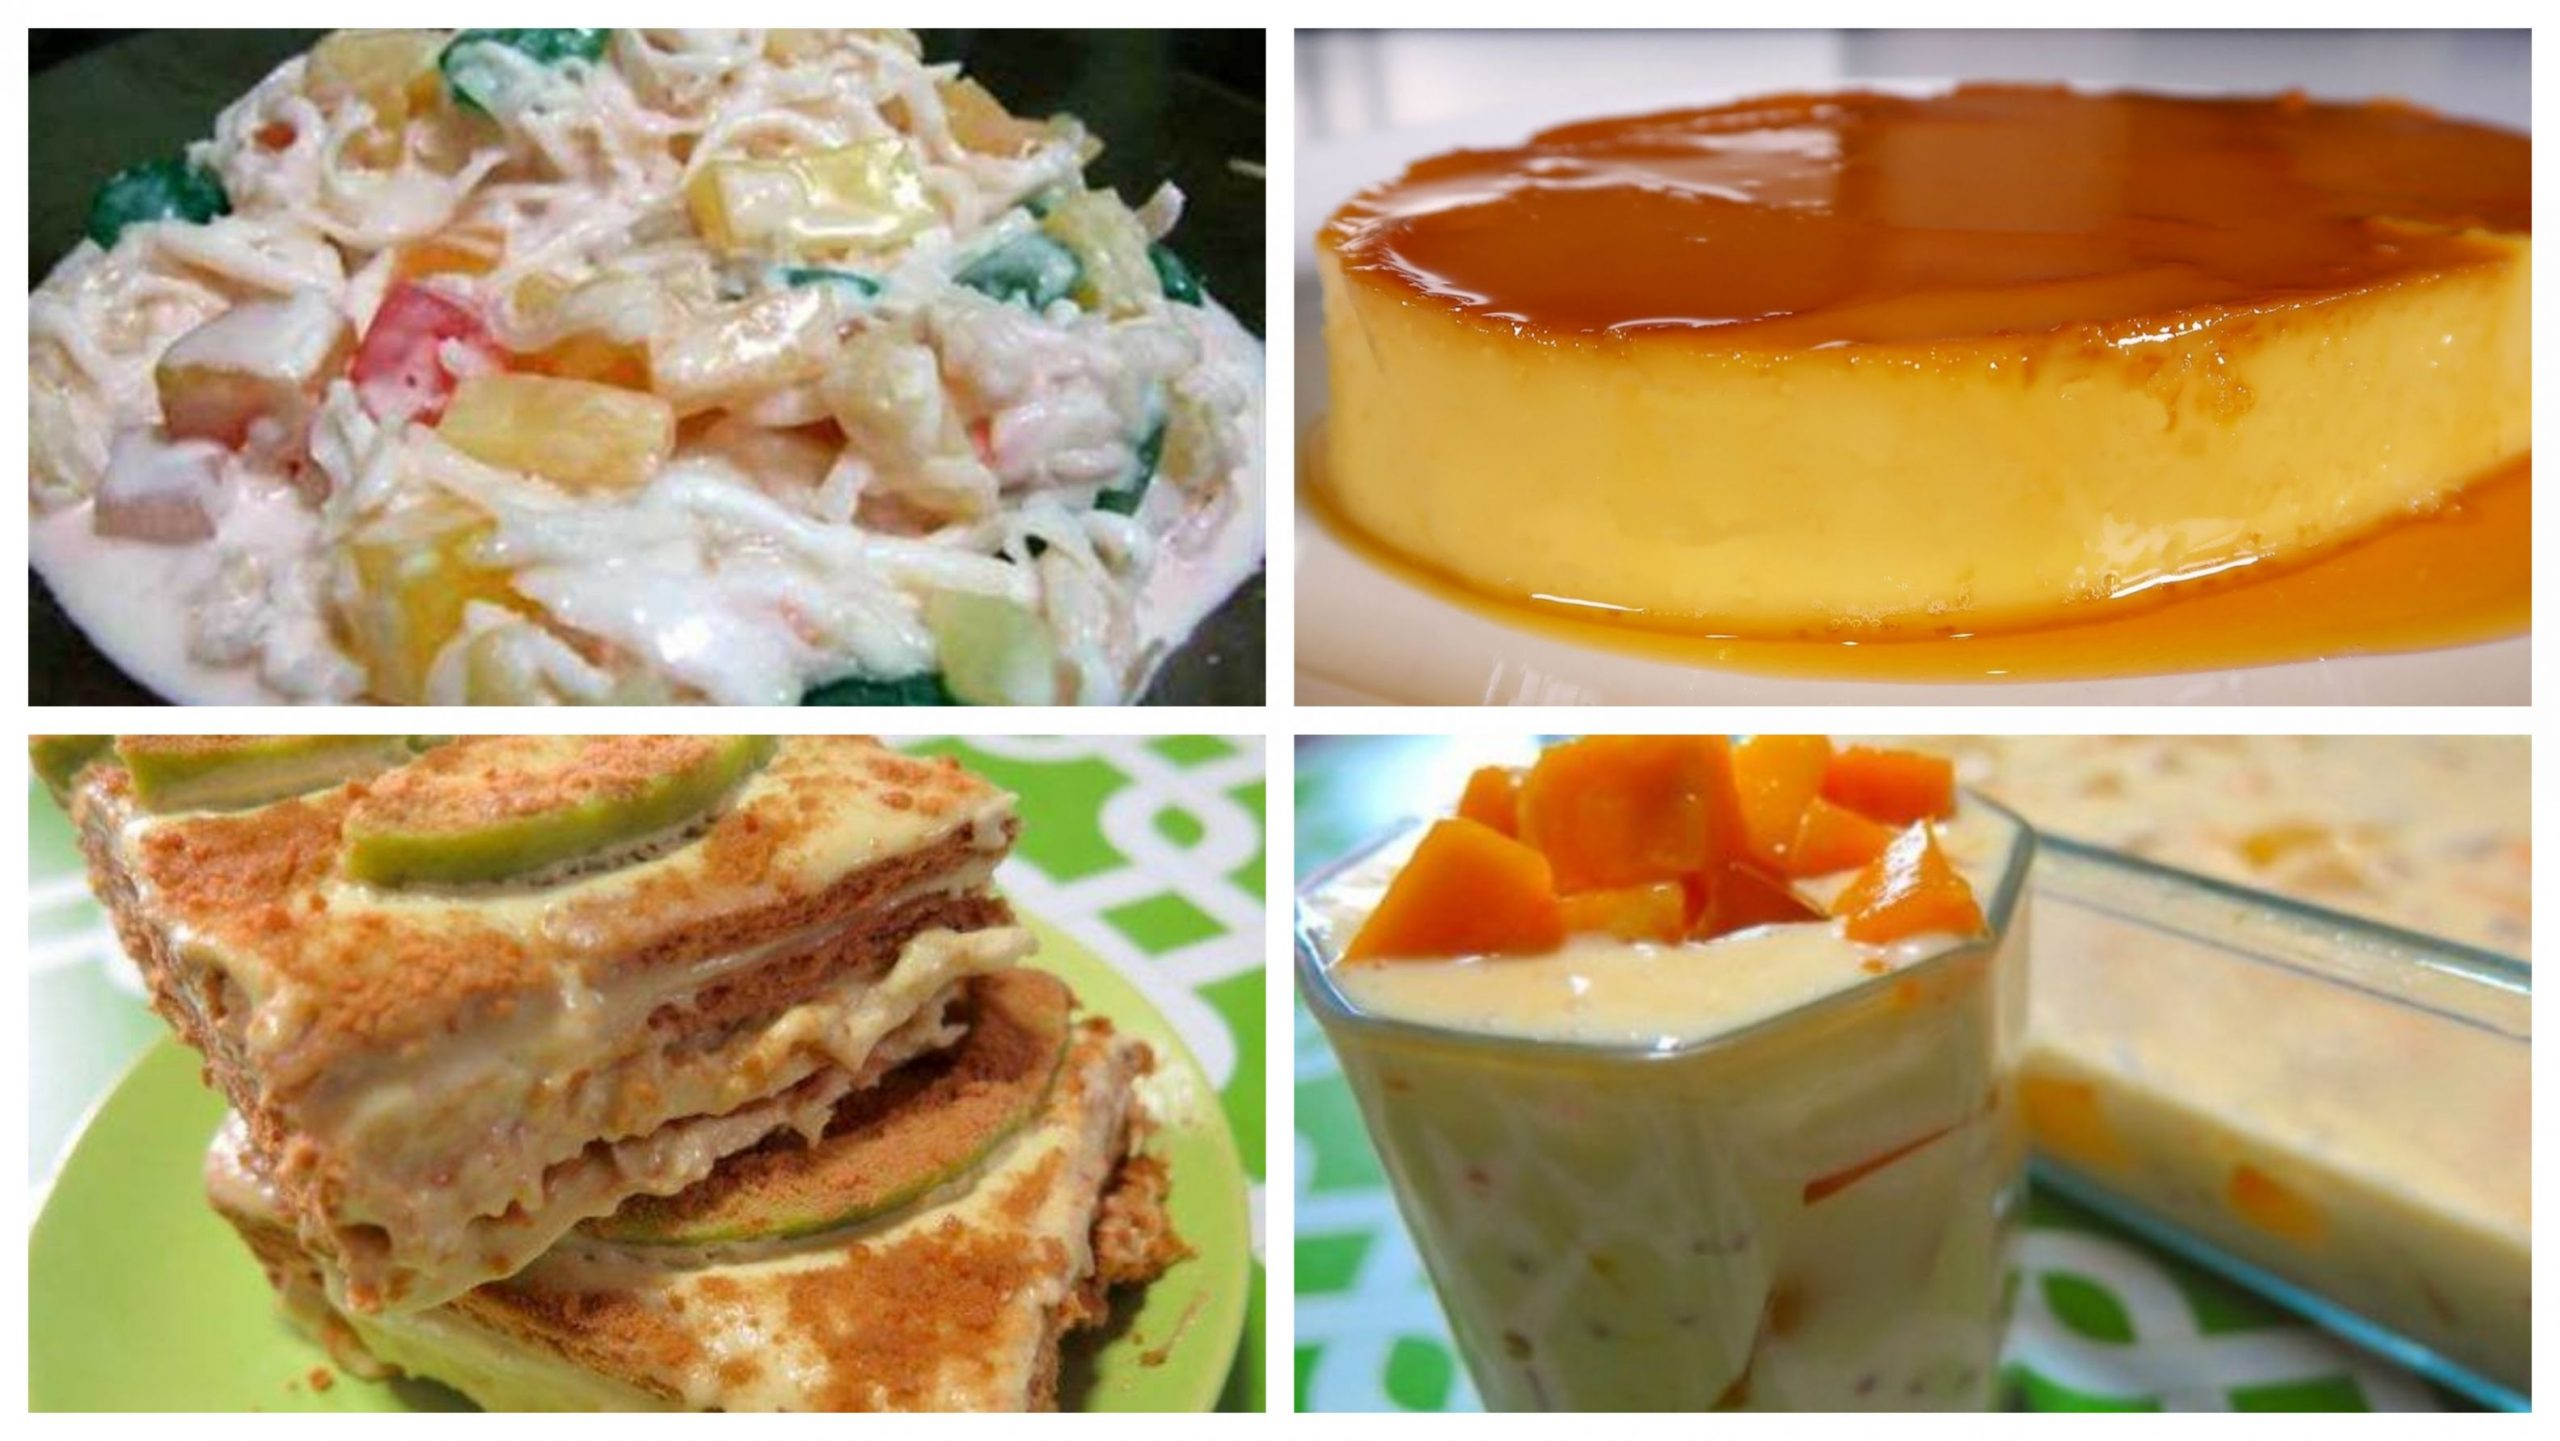 Top 10 Dessert Recipes | Panlasang Pinoy Recipes™